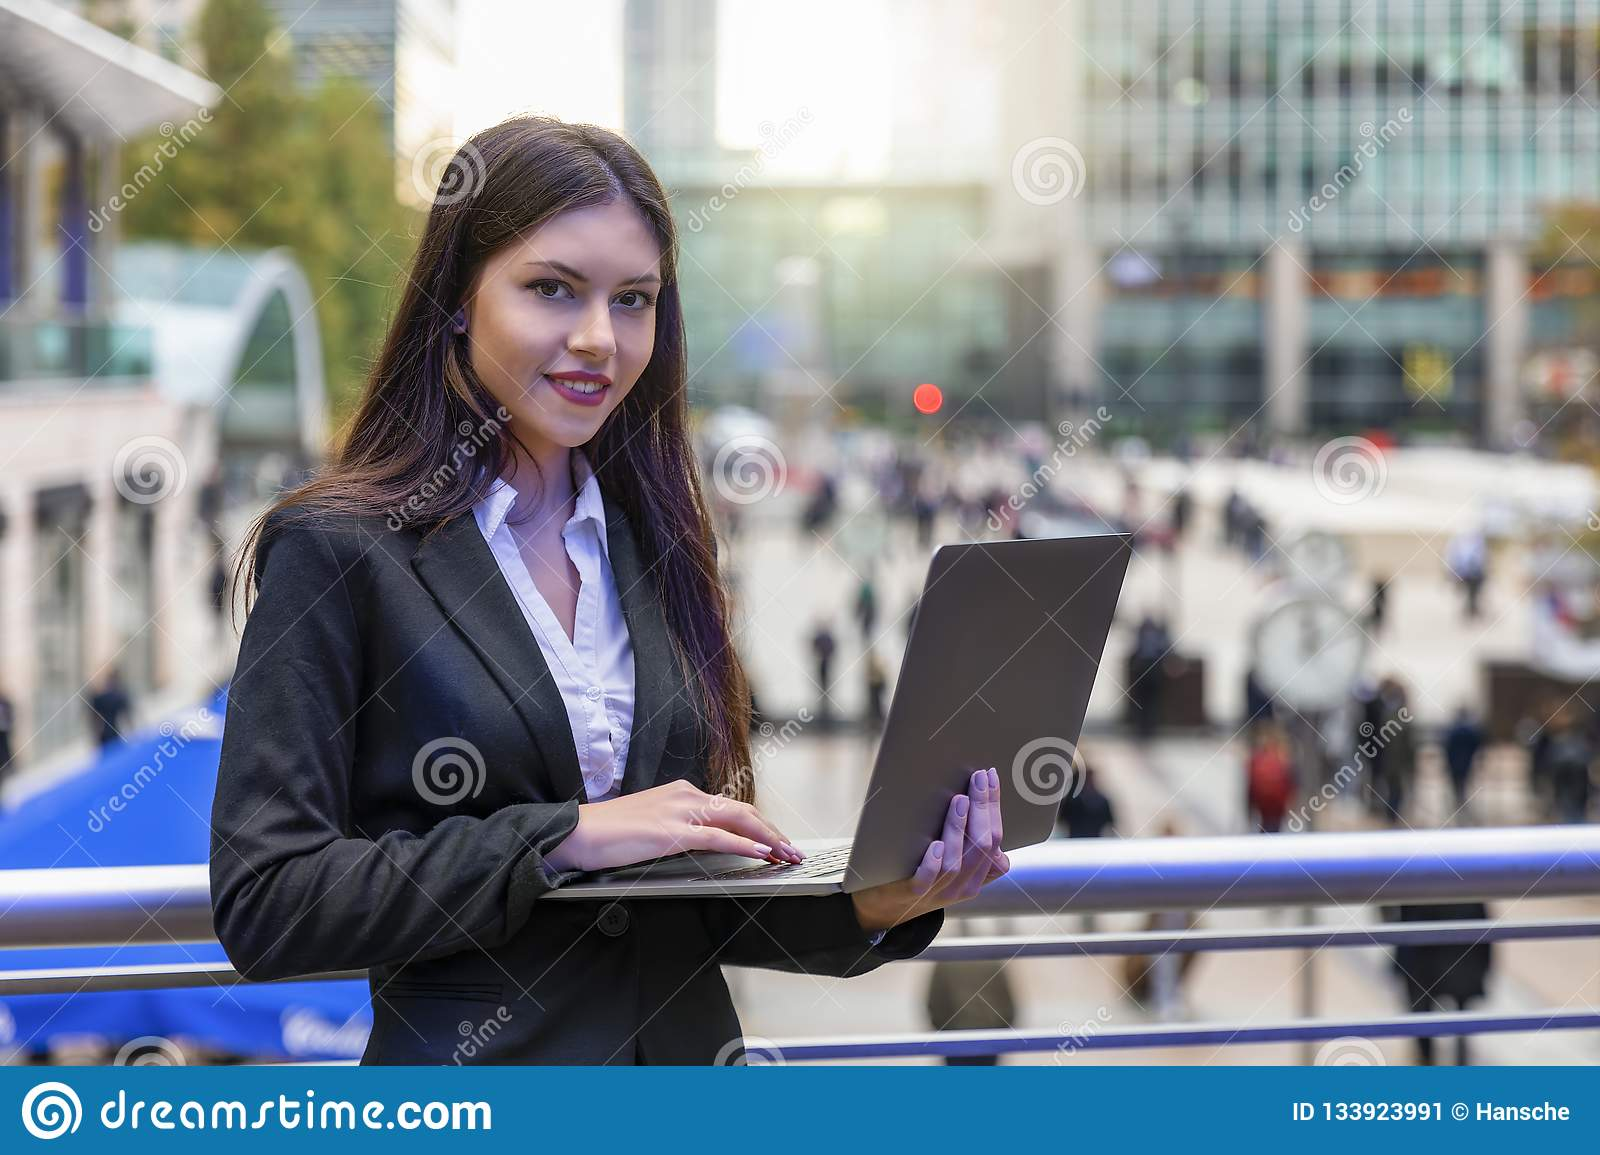 Woman working on a laptop outdoors in Canary Wharf, UK